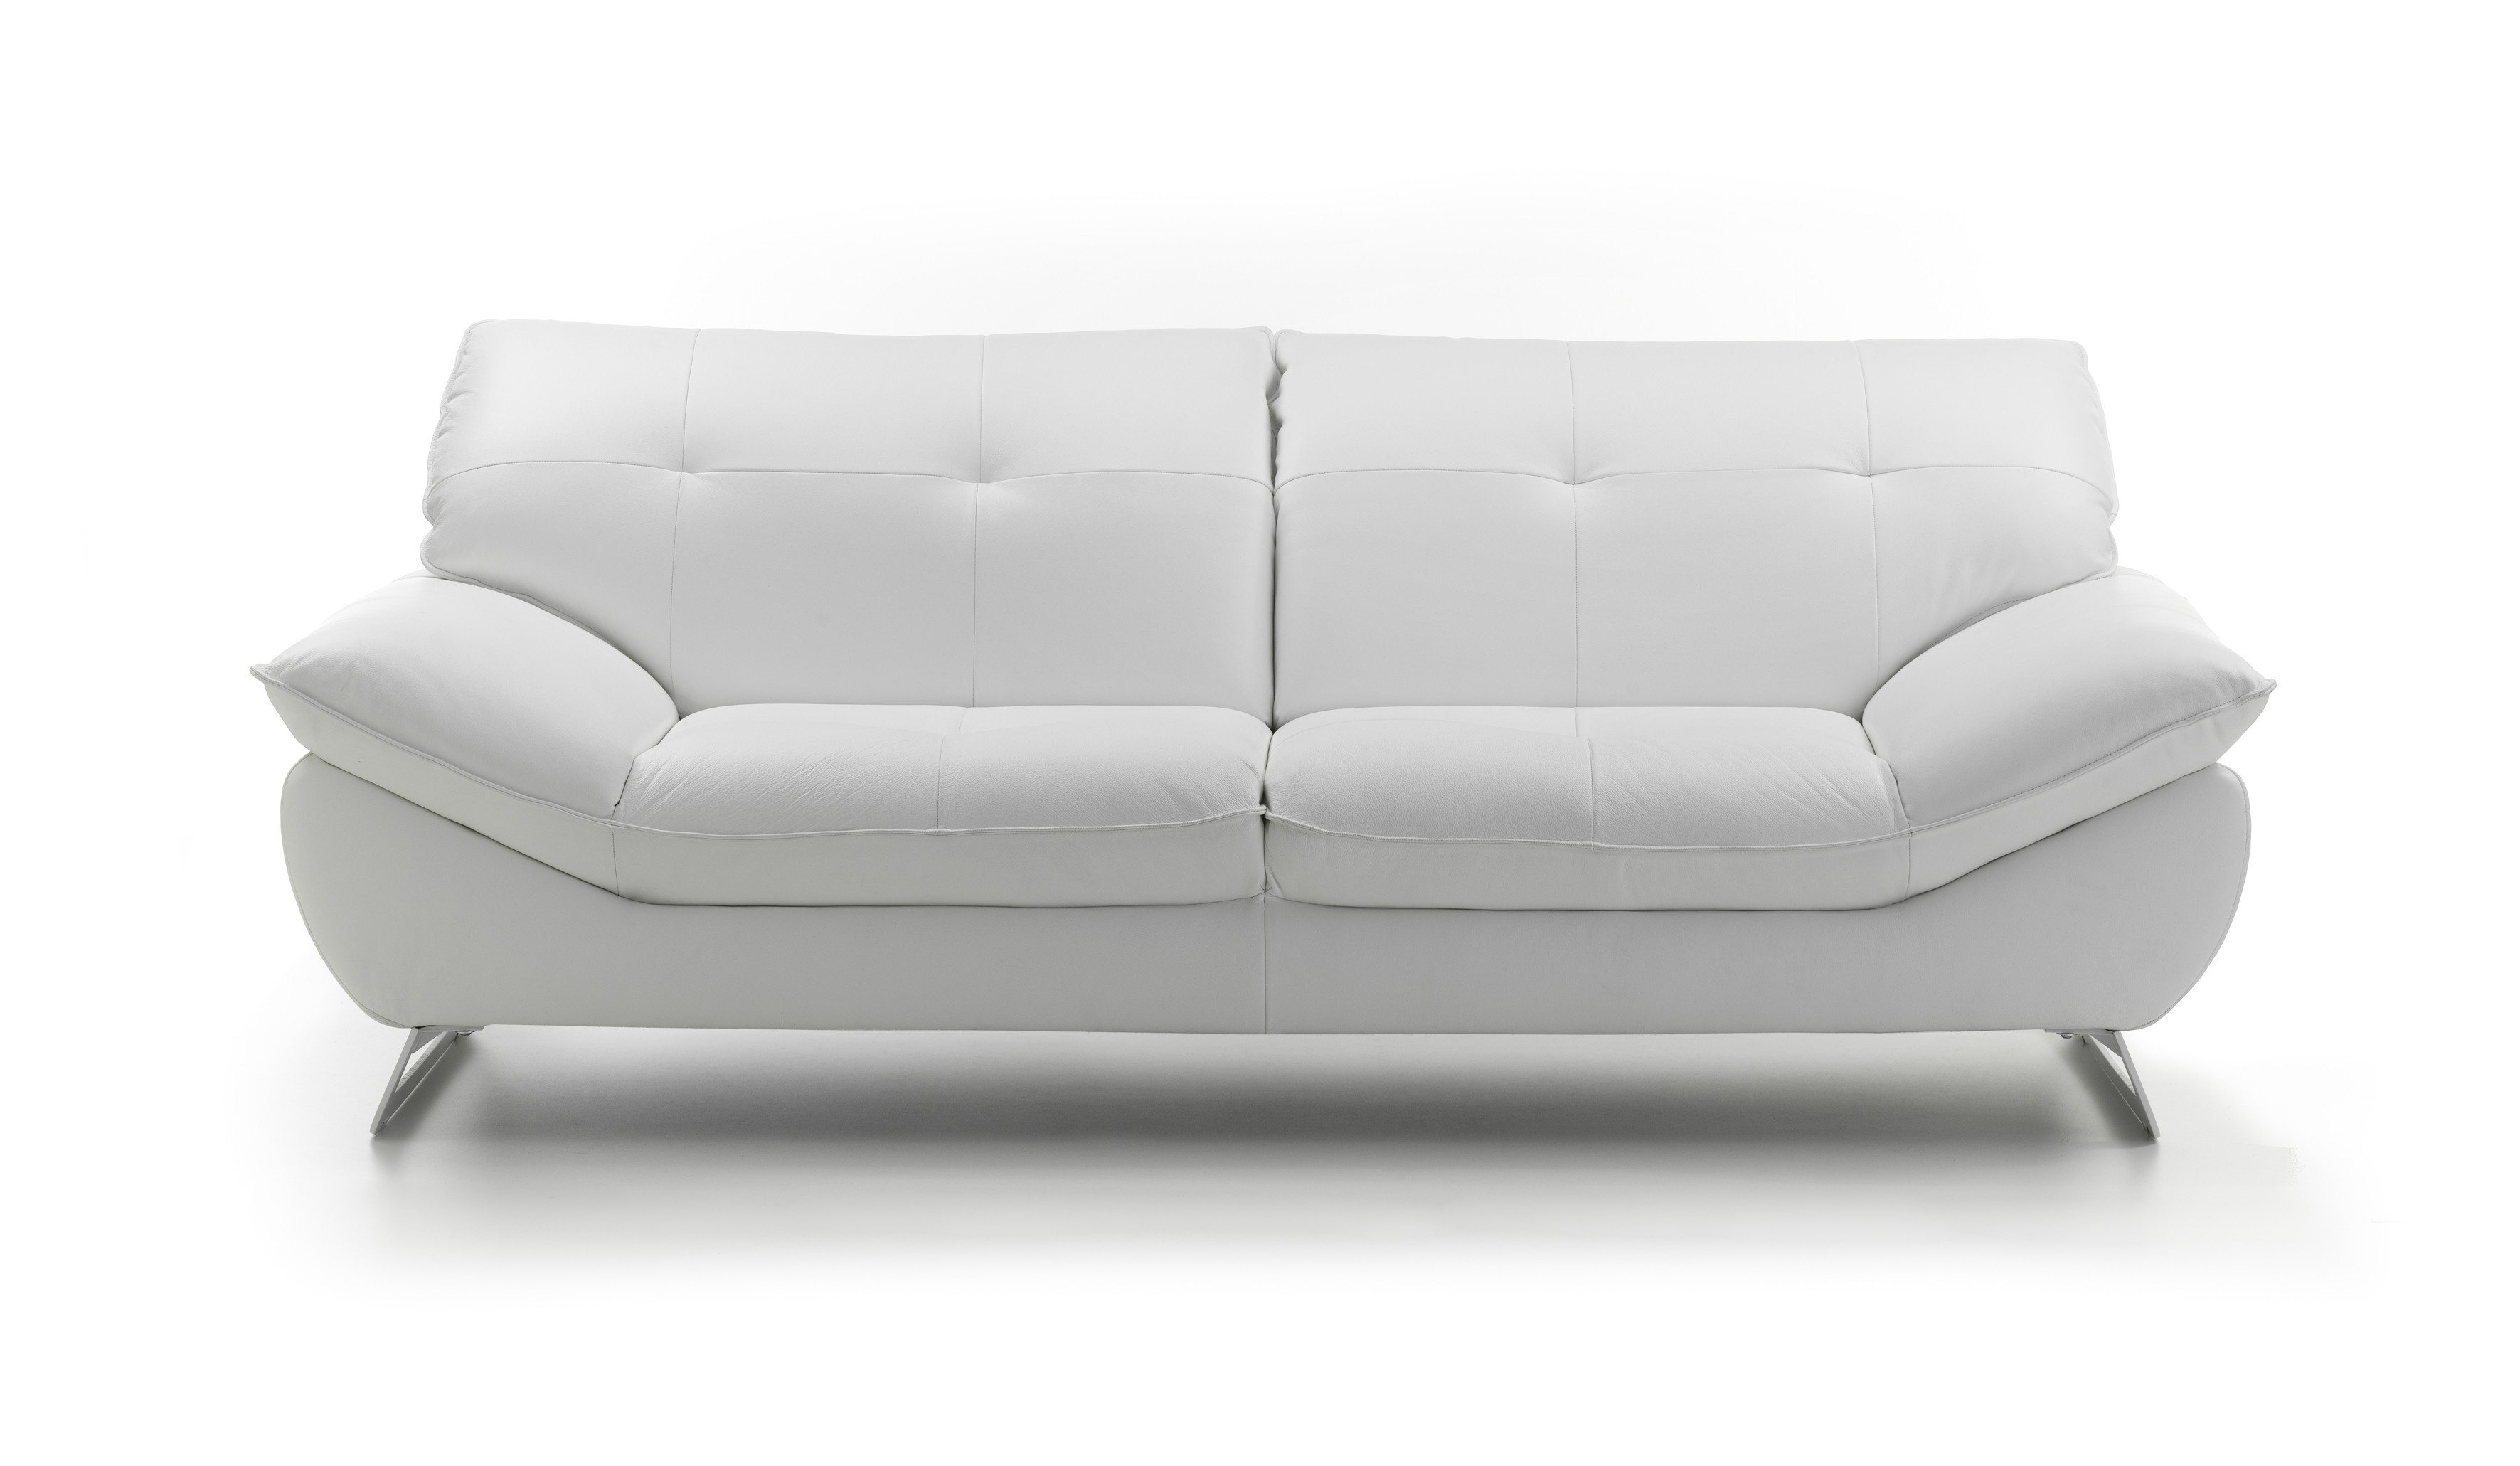 Trinidad Leather Sofa By Rom Belgium At Nova Interiors